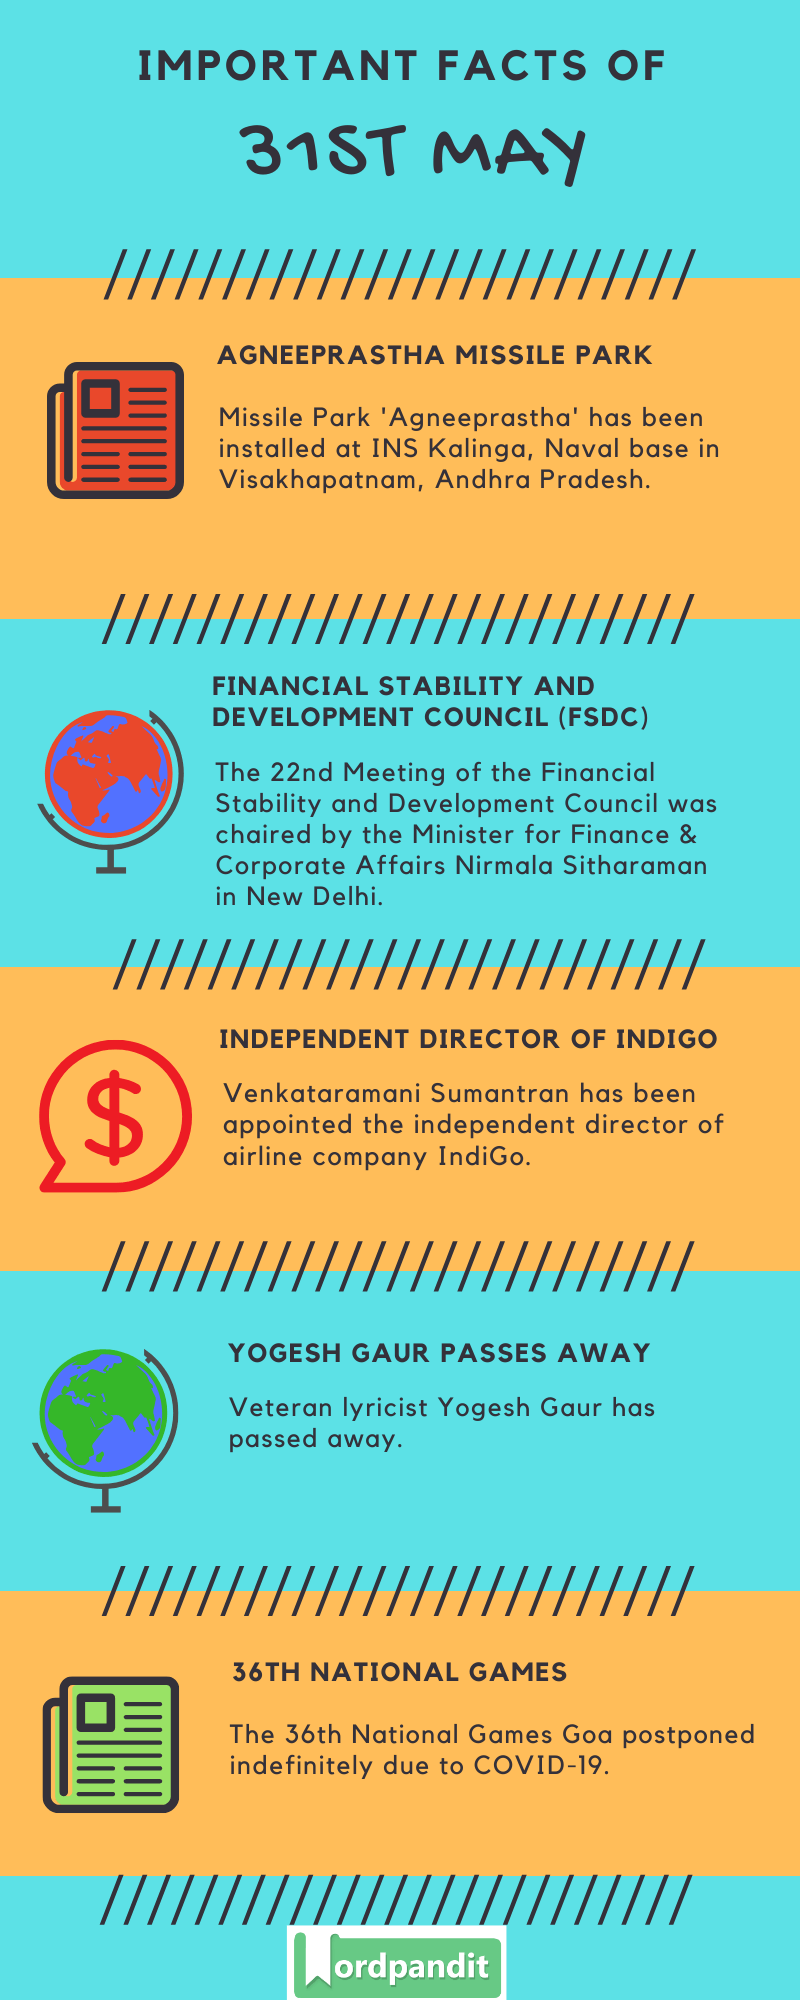 Daily Current Affairs 31st May 2020 Current Affairs Quiz 31st May 2020 Current Affairs Infographic